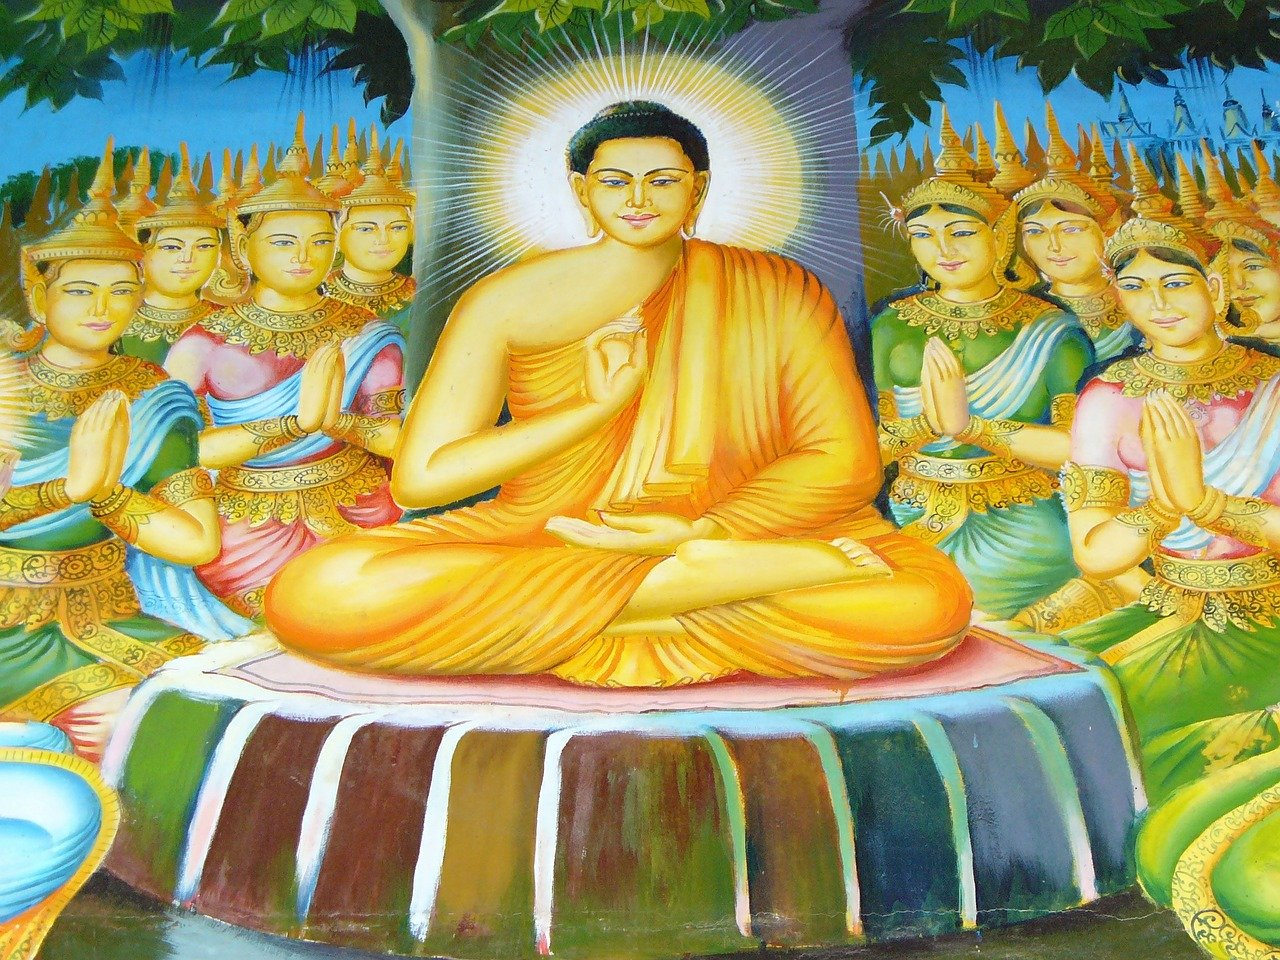 buddhism kisogotami Kisa gotami was the wife of a wealthy man of savatthi her story is one of the more famous ones in buddhism  after losing her only child, kisa gotami became desperate and asked if anyone could help her.